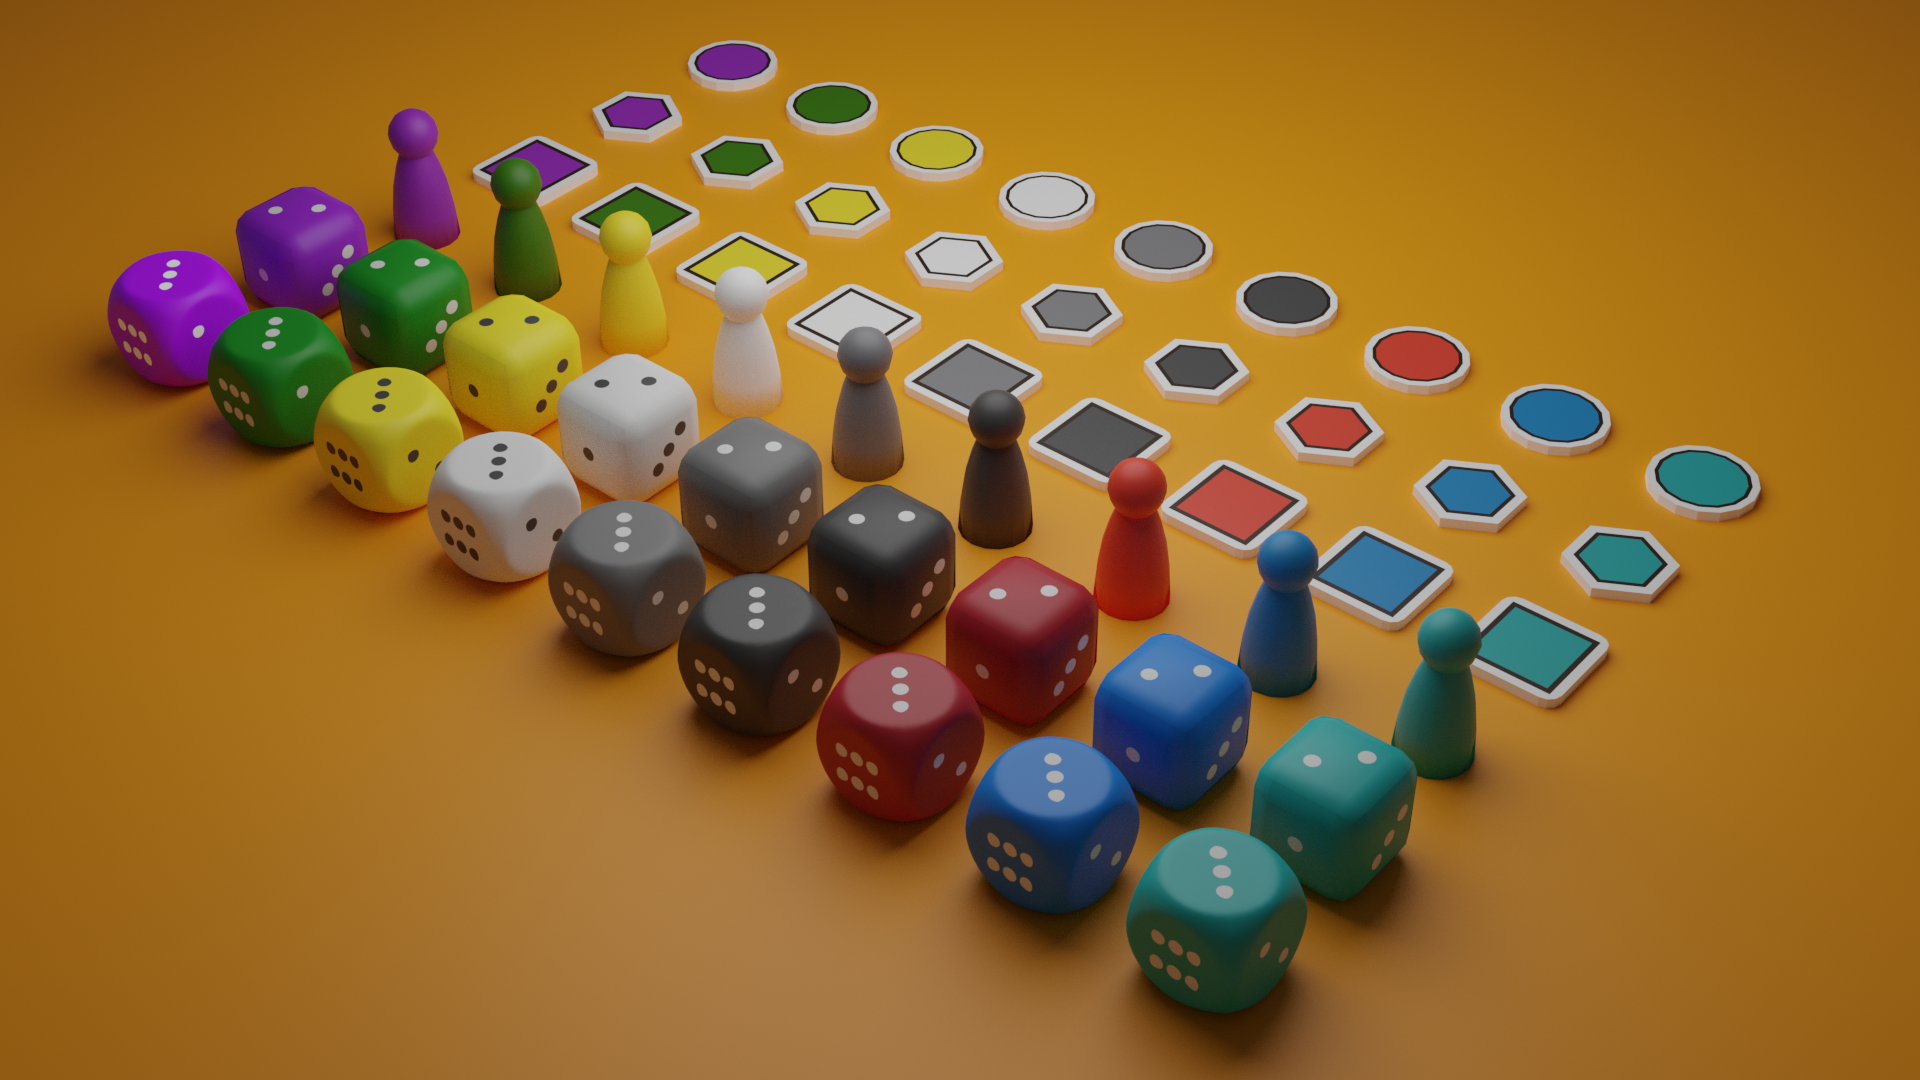 Board Game Assets